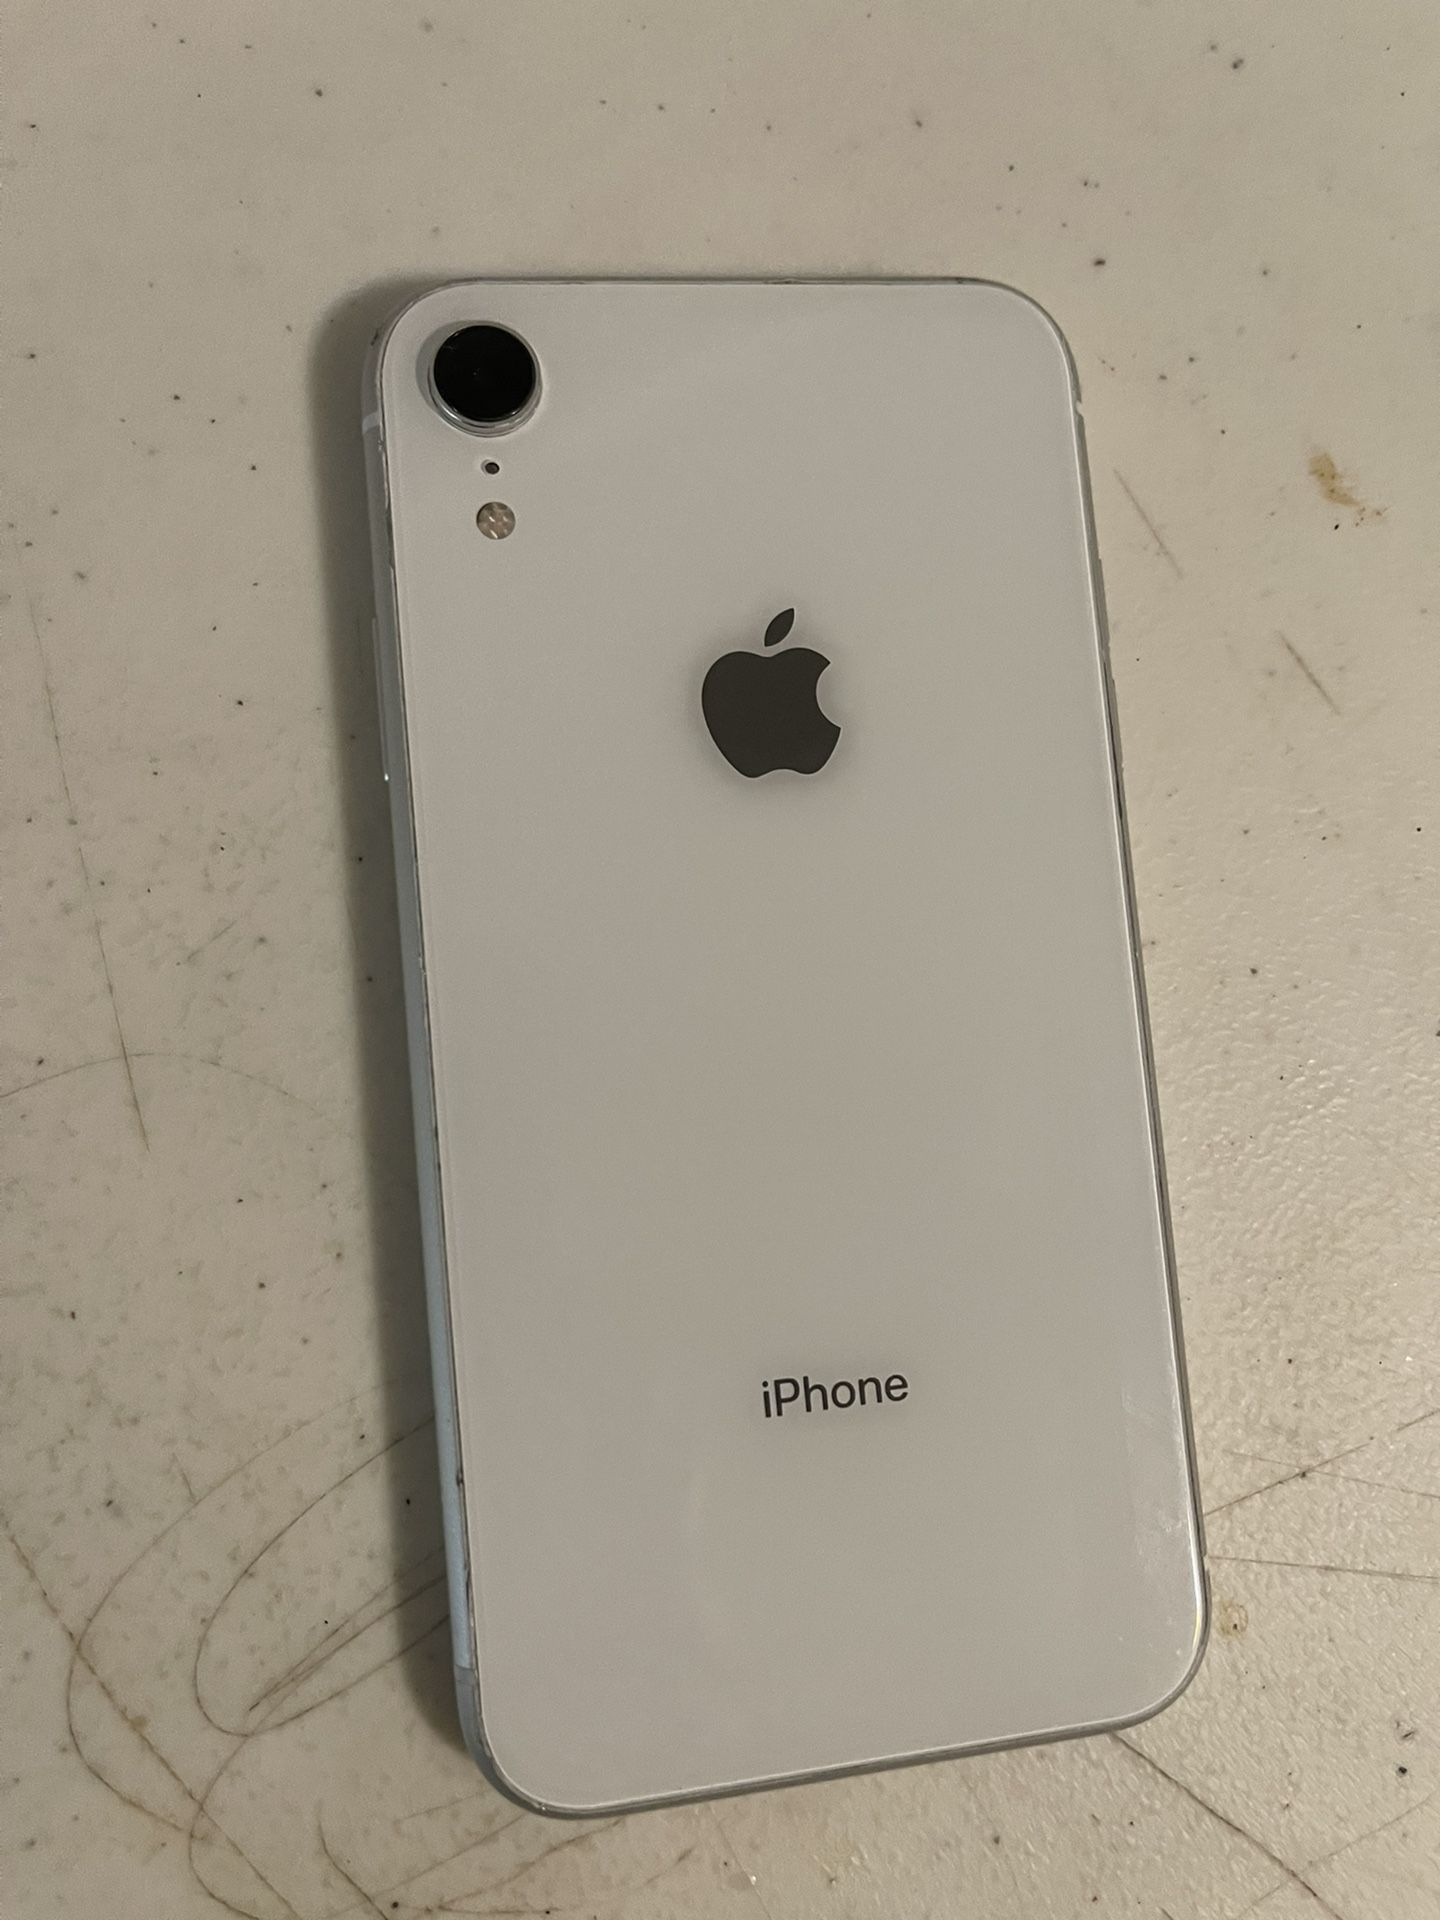 Apple iPhone XR 64 GB T-mobile By metro pc color white. Work very well. Perfect condition.